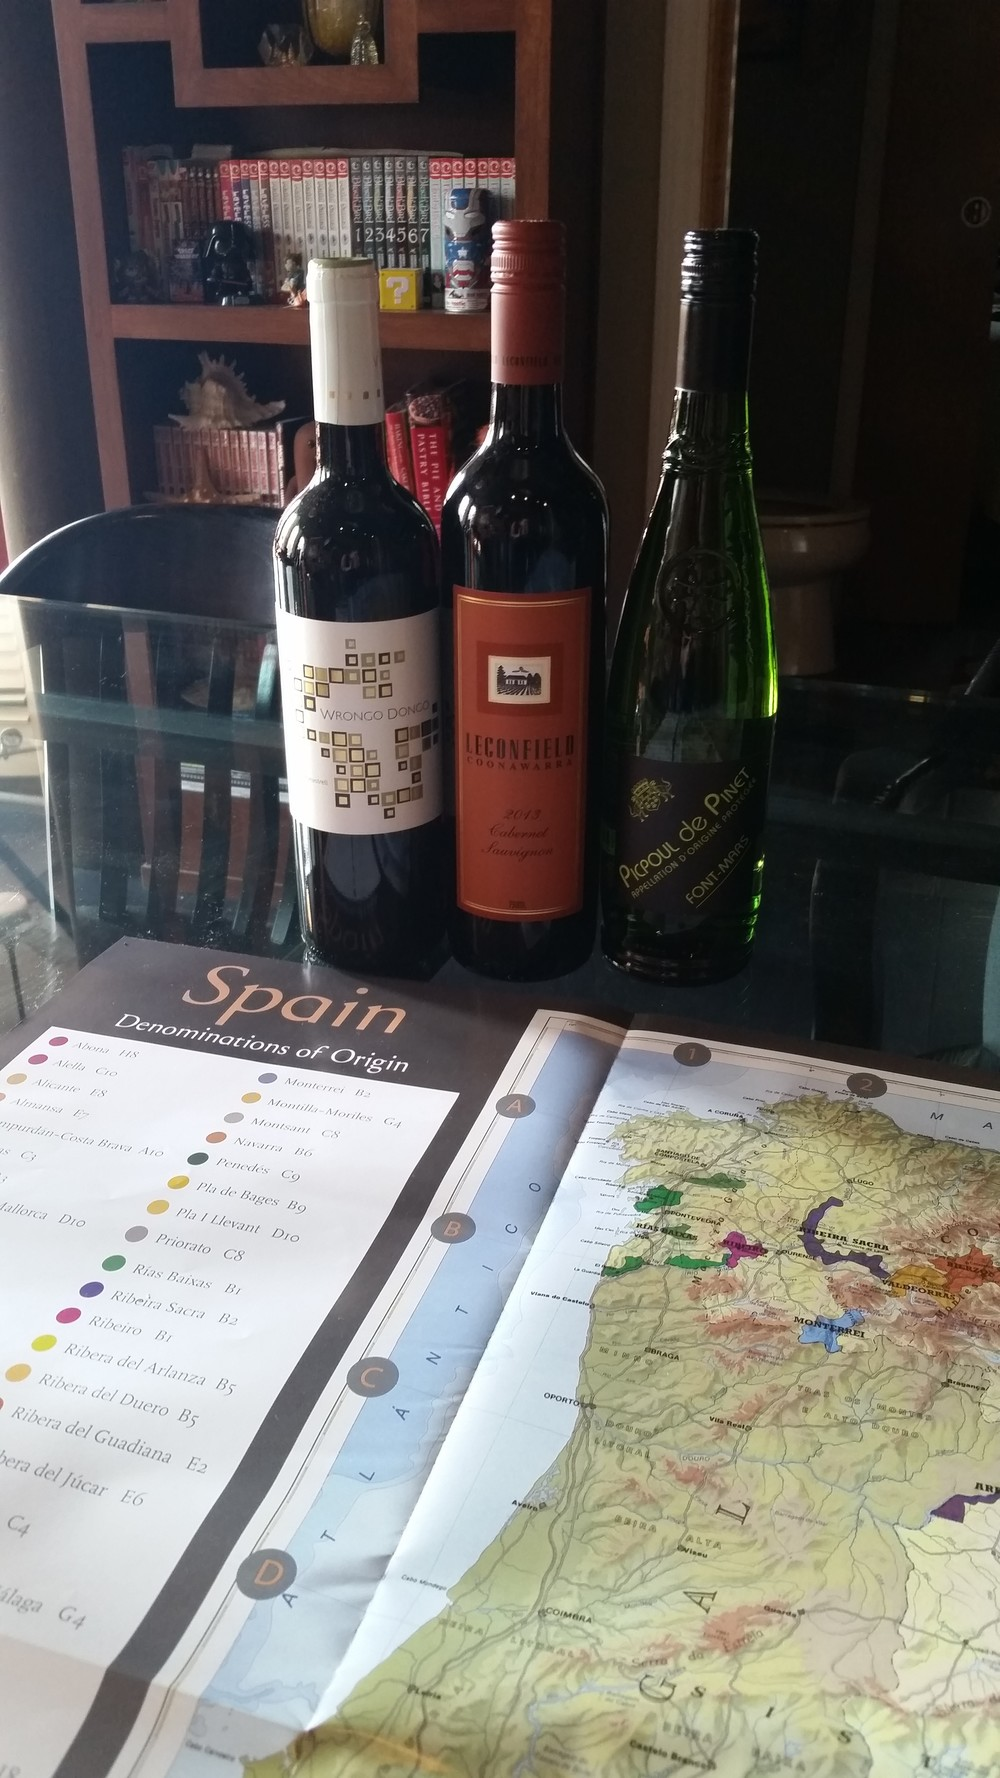 Mass Ave Wine Shop, May Wine Club and Map of Wine Regions in Spain